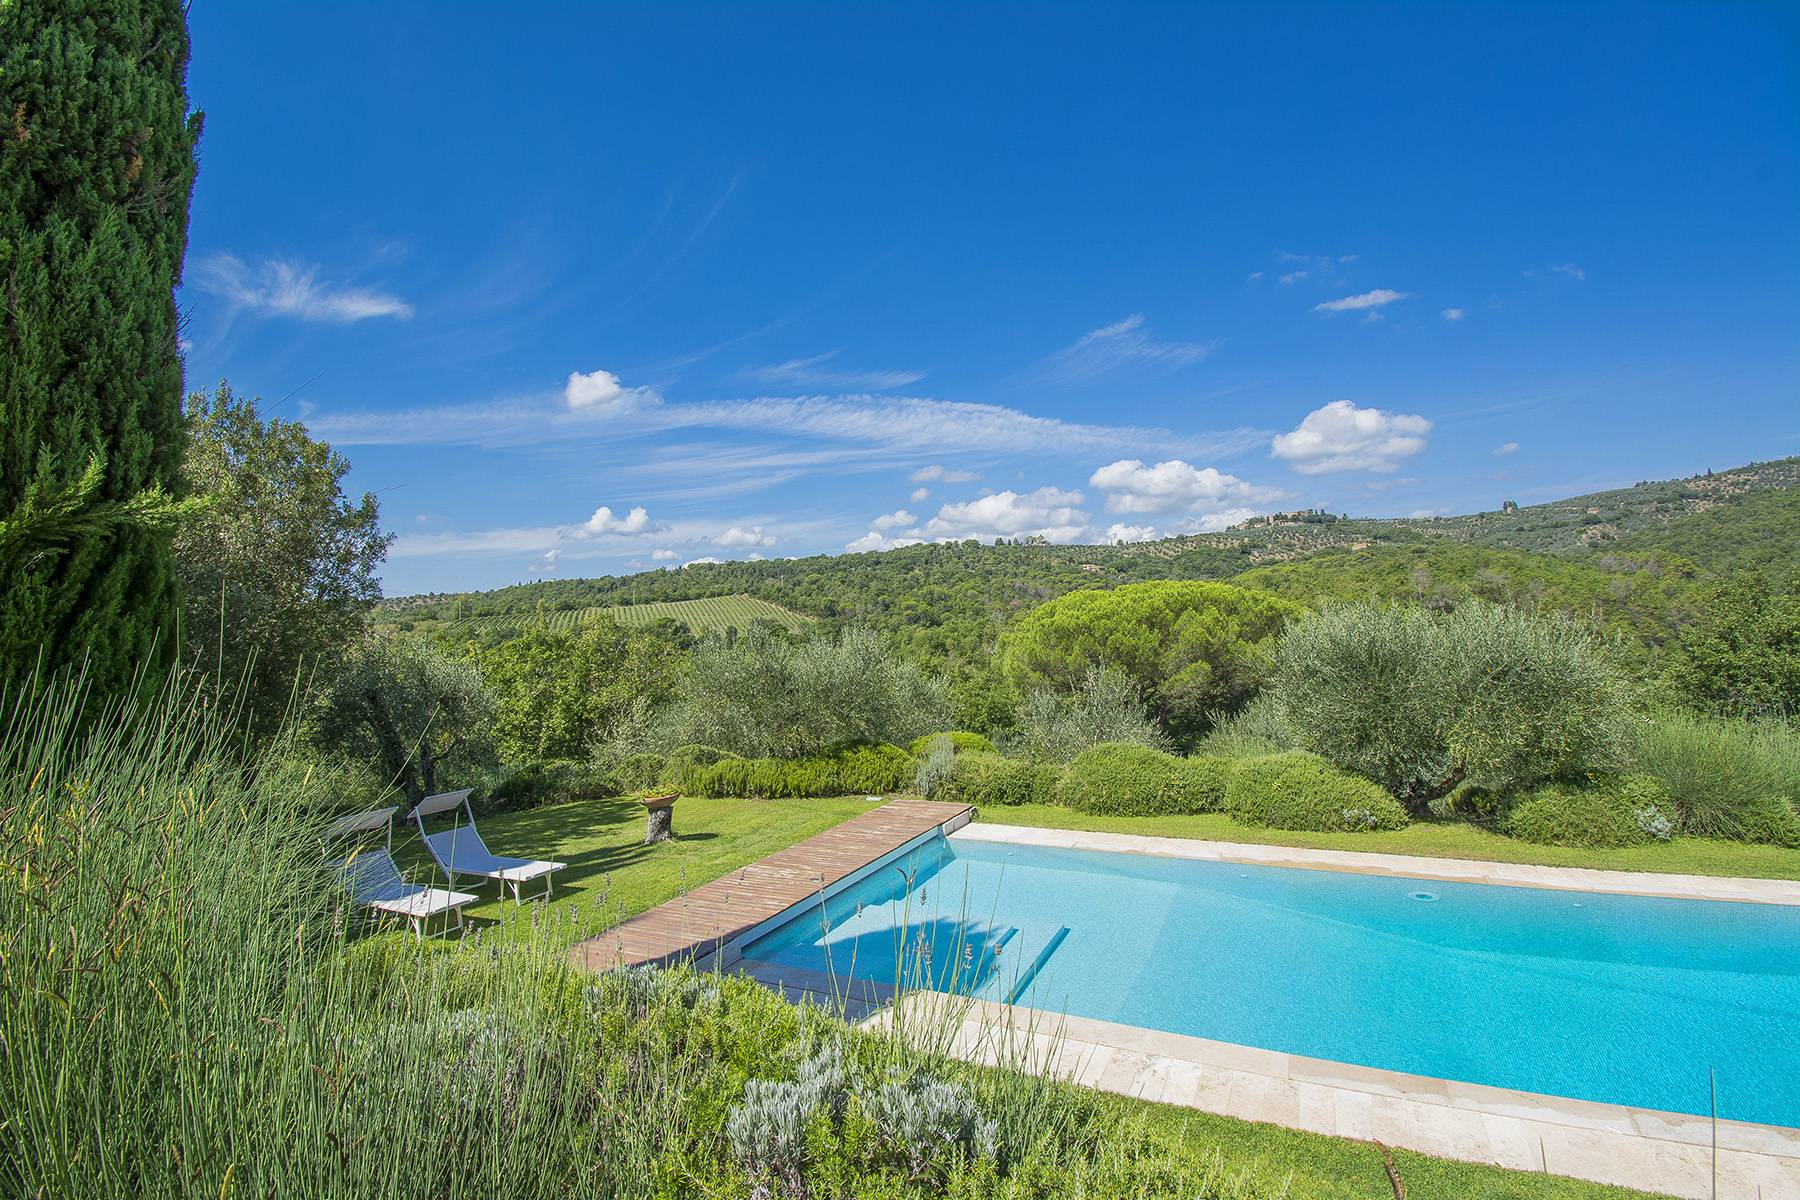 House in the Tuscan Hills for Sale - 20